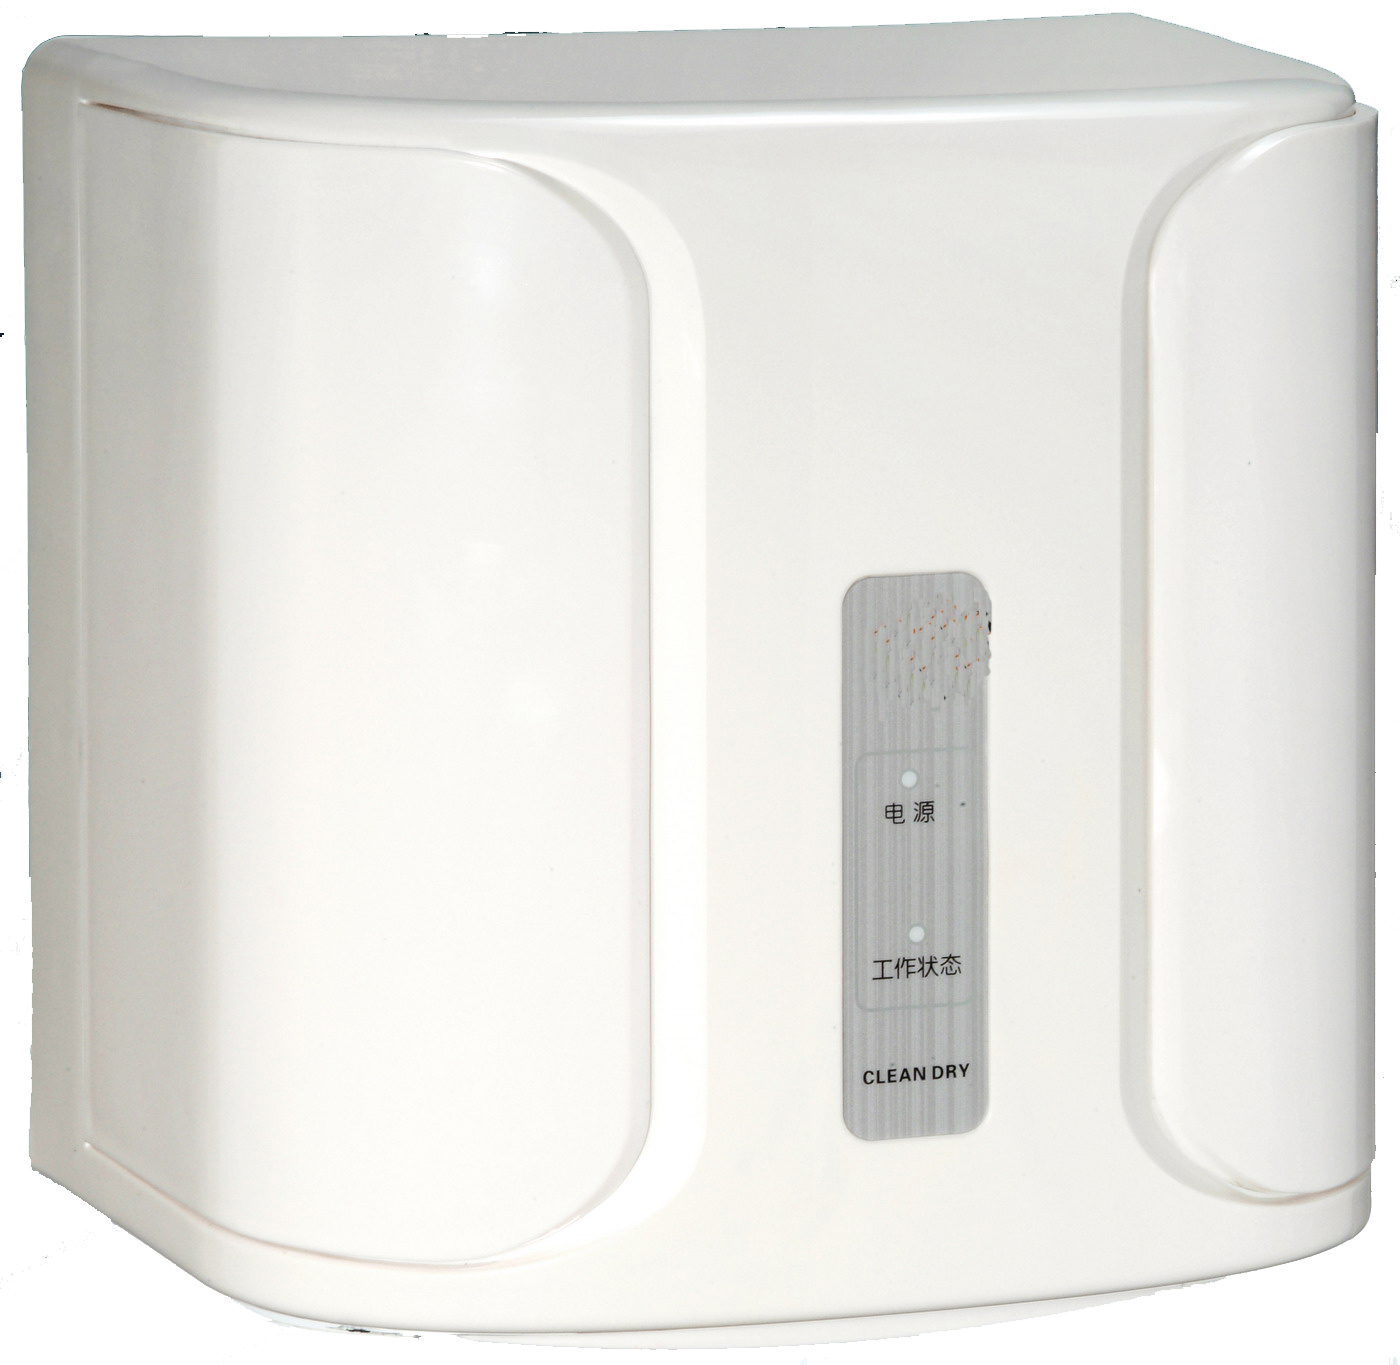 Hdsafe Fast Dry Energy-Efficient Portable Hand Dryer